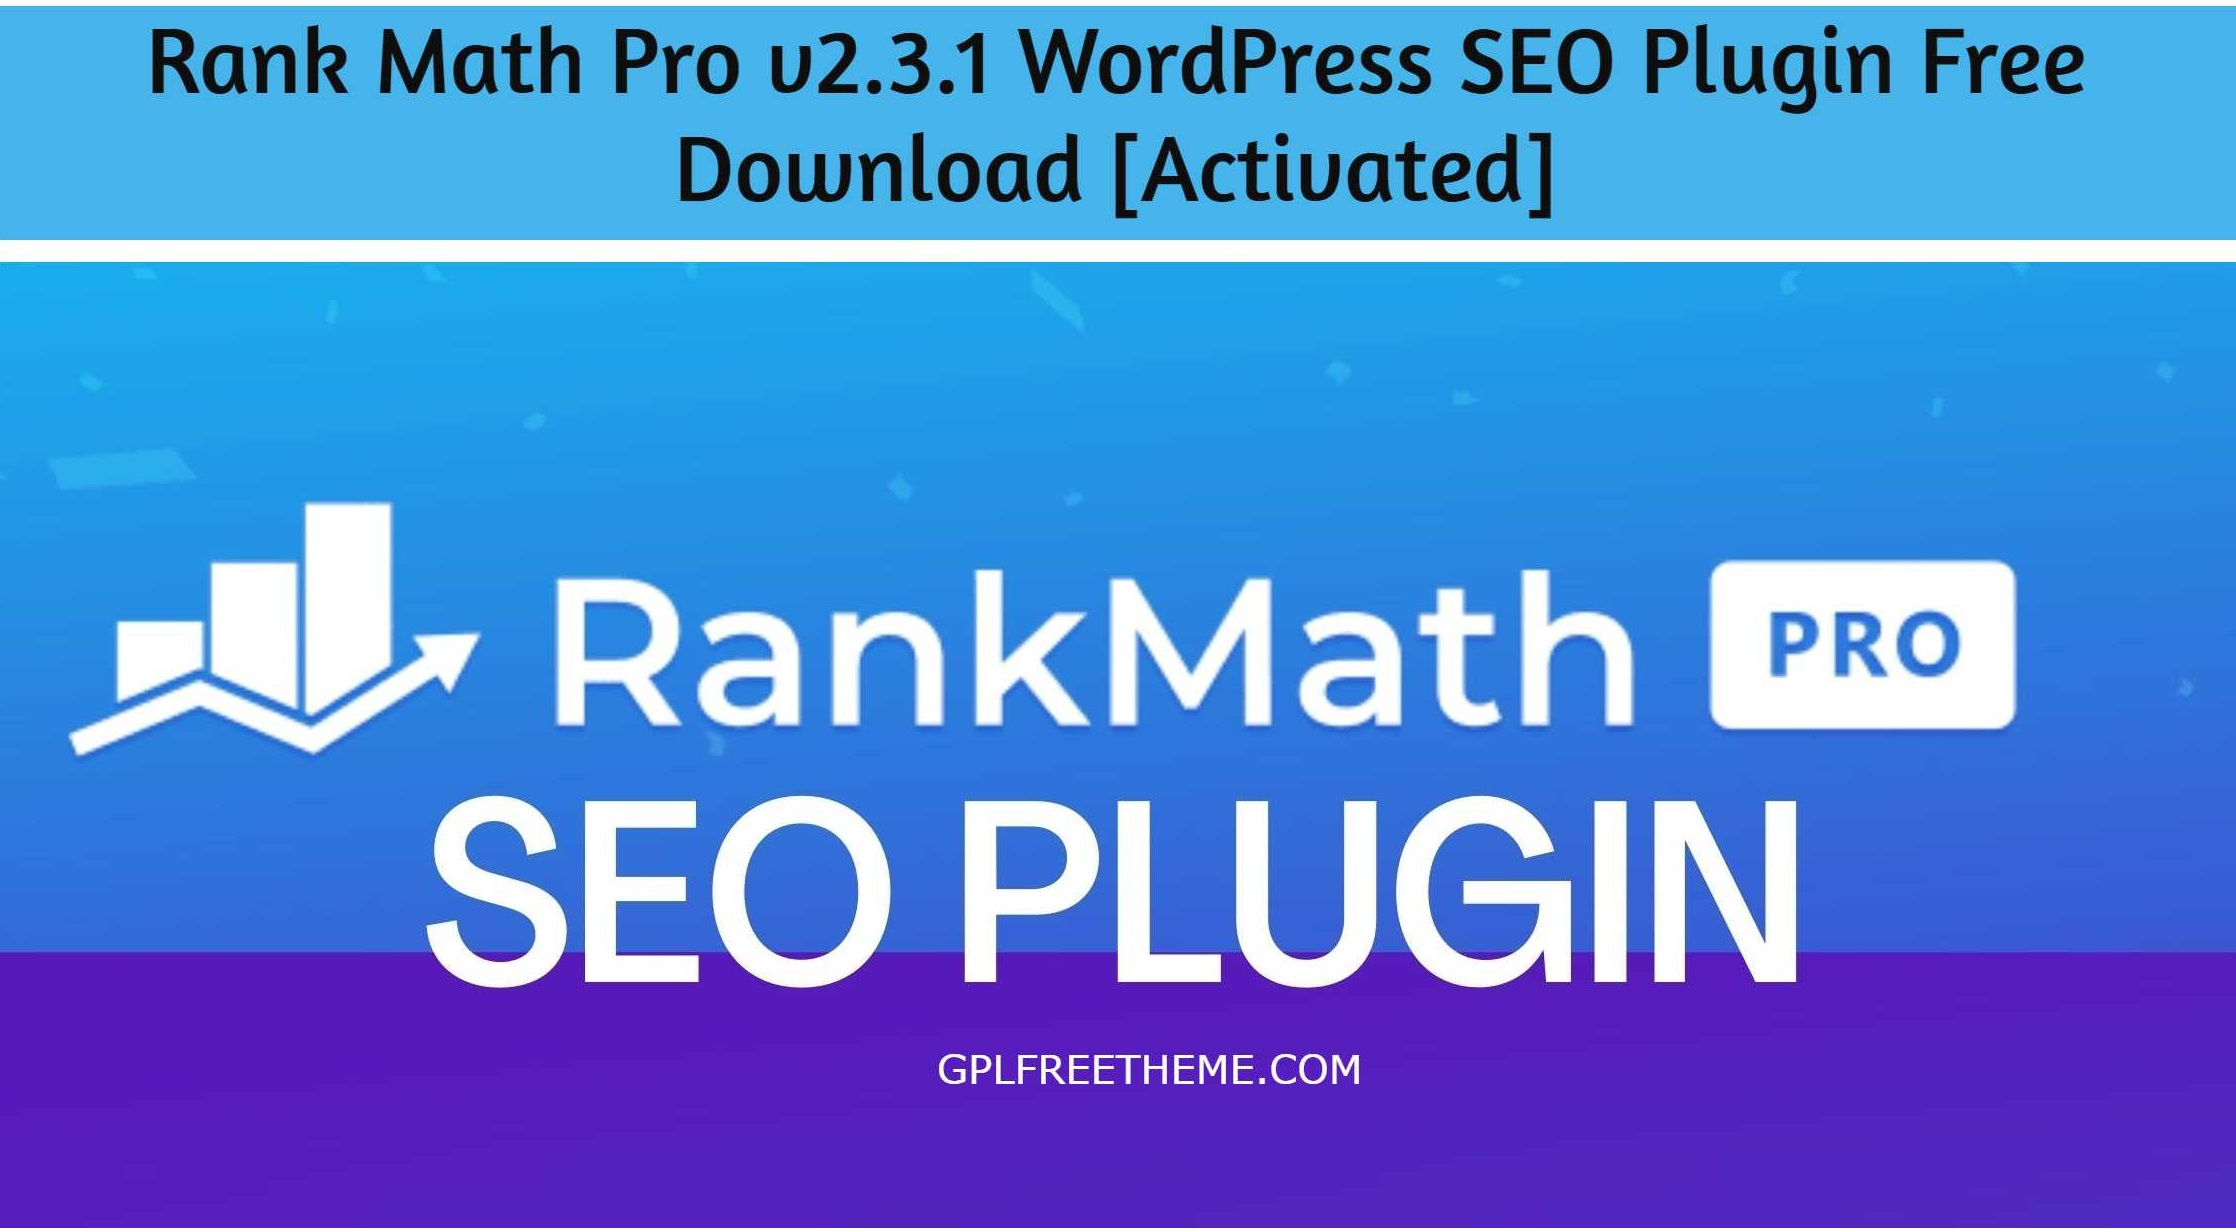 Rank Math Pro v2.3.1 - Free Download [Activated]